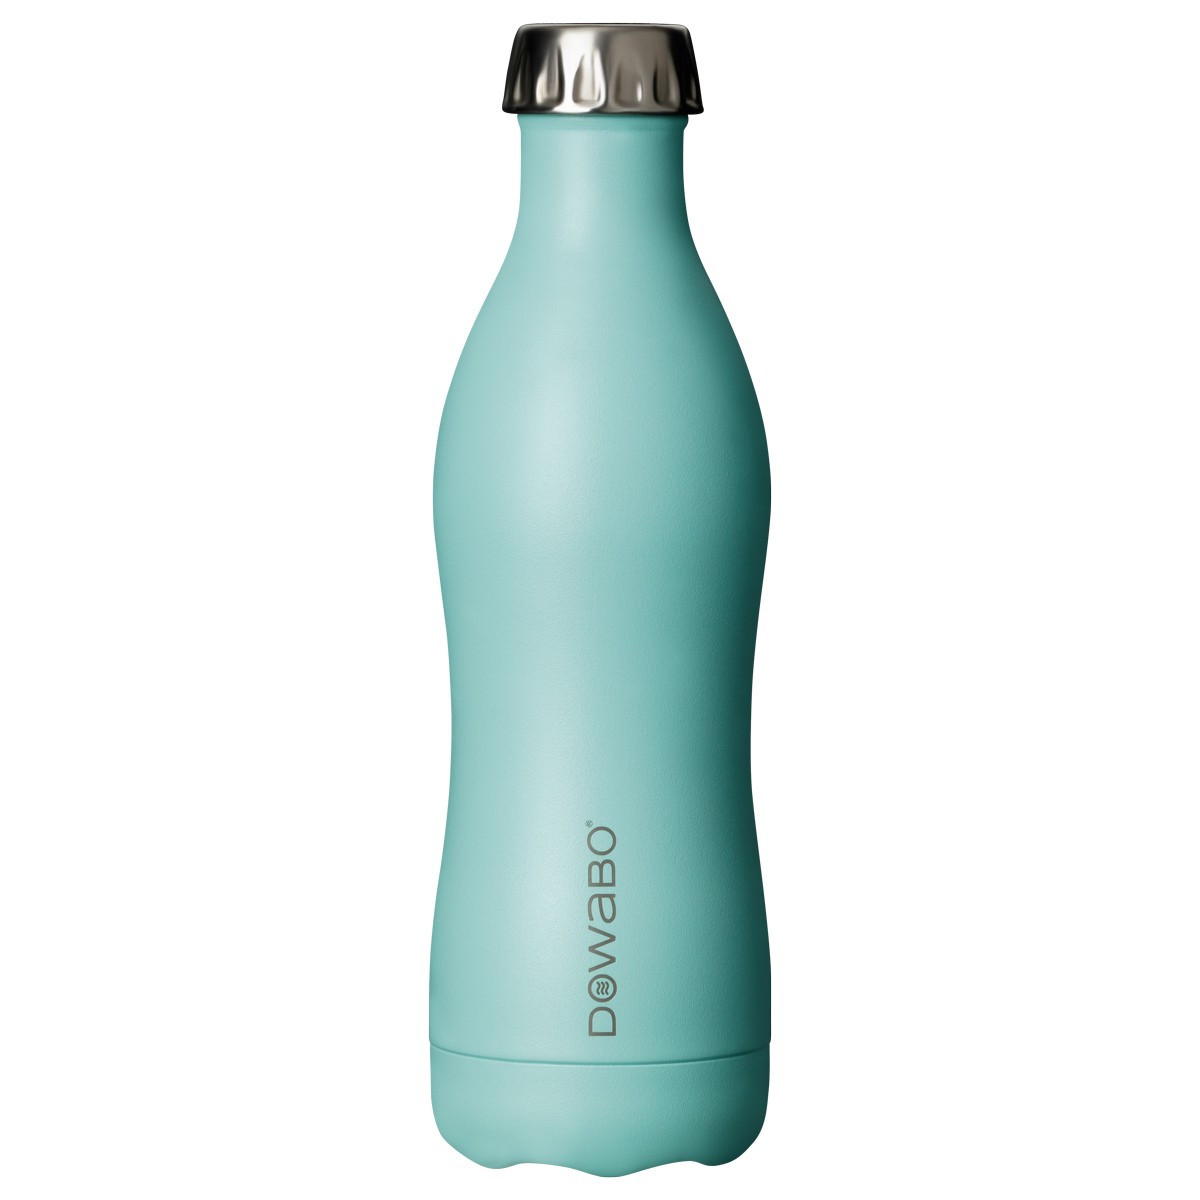 DOWABO® Bottle - Swimming Pool 500ml Cocktail Collection